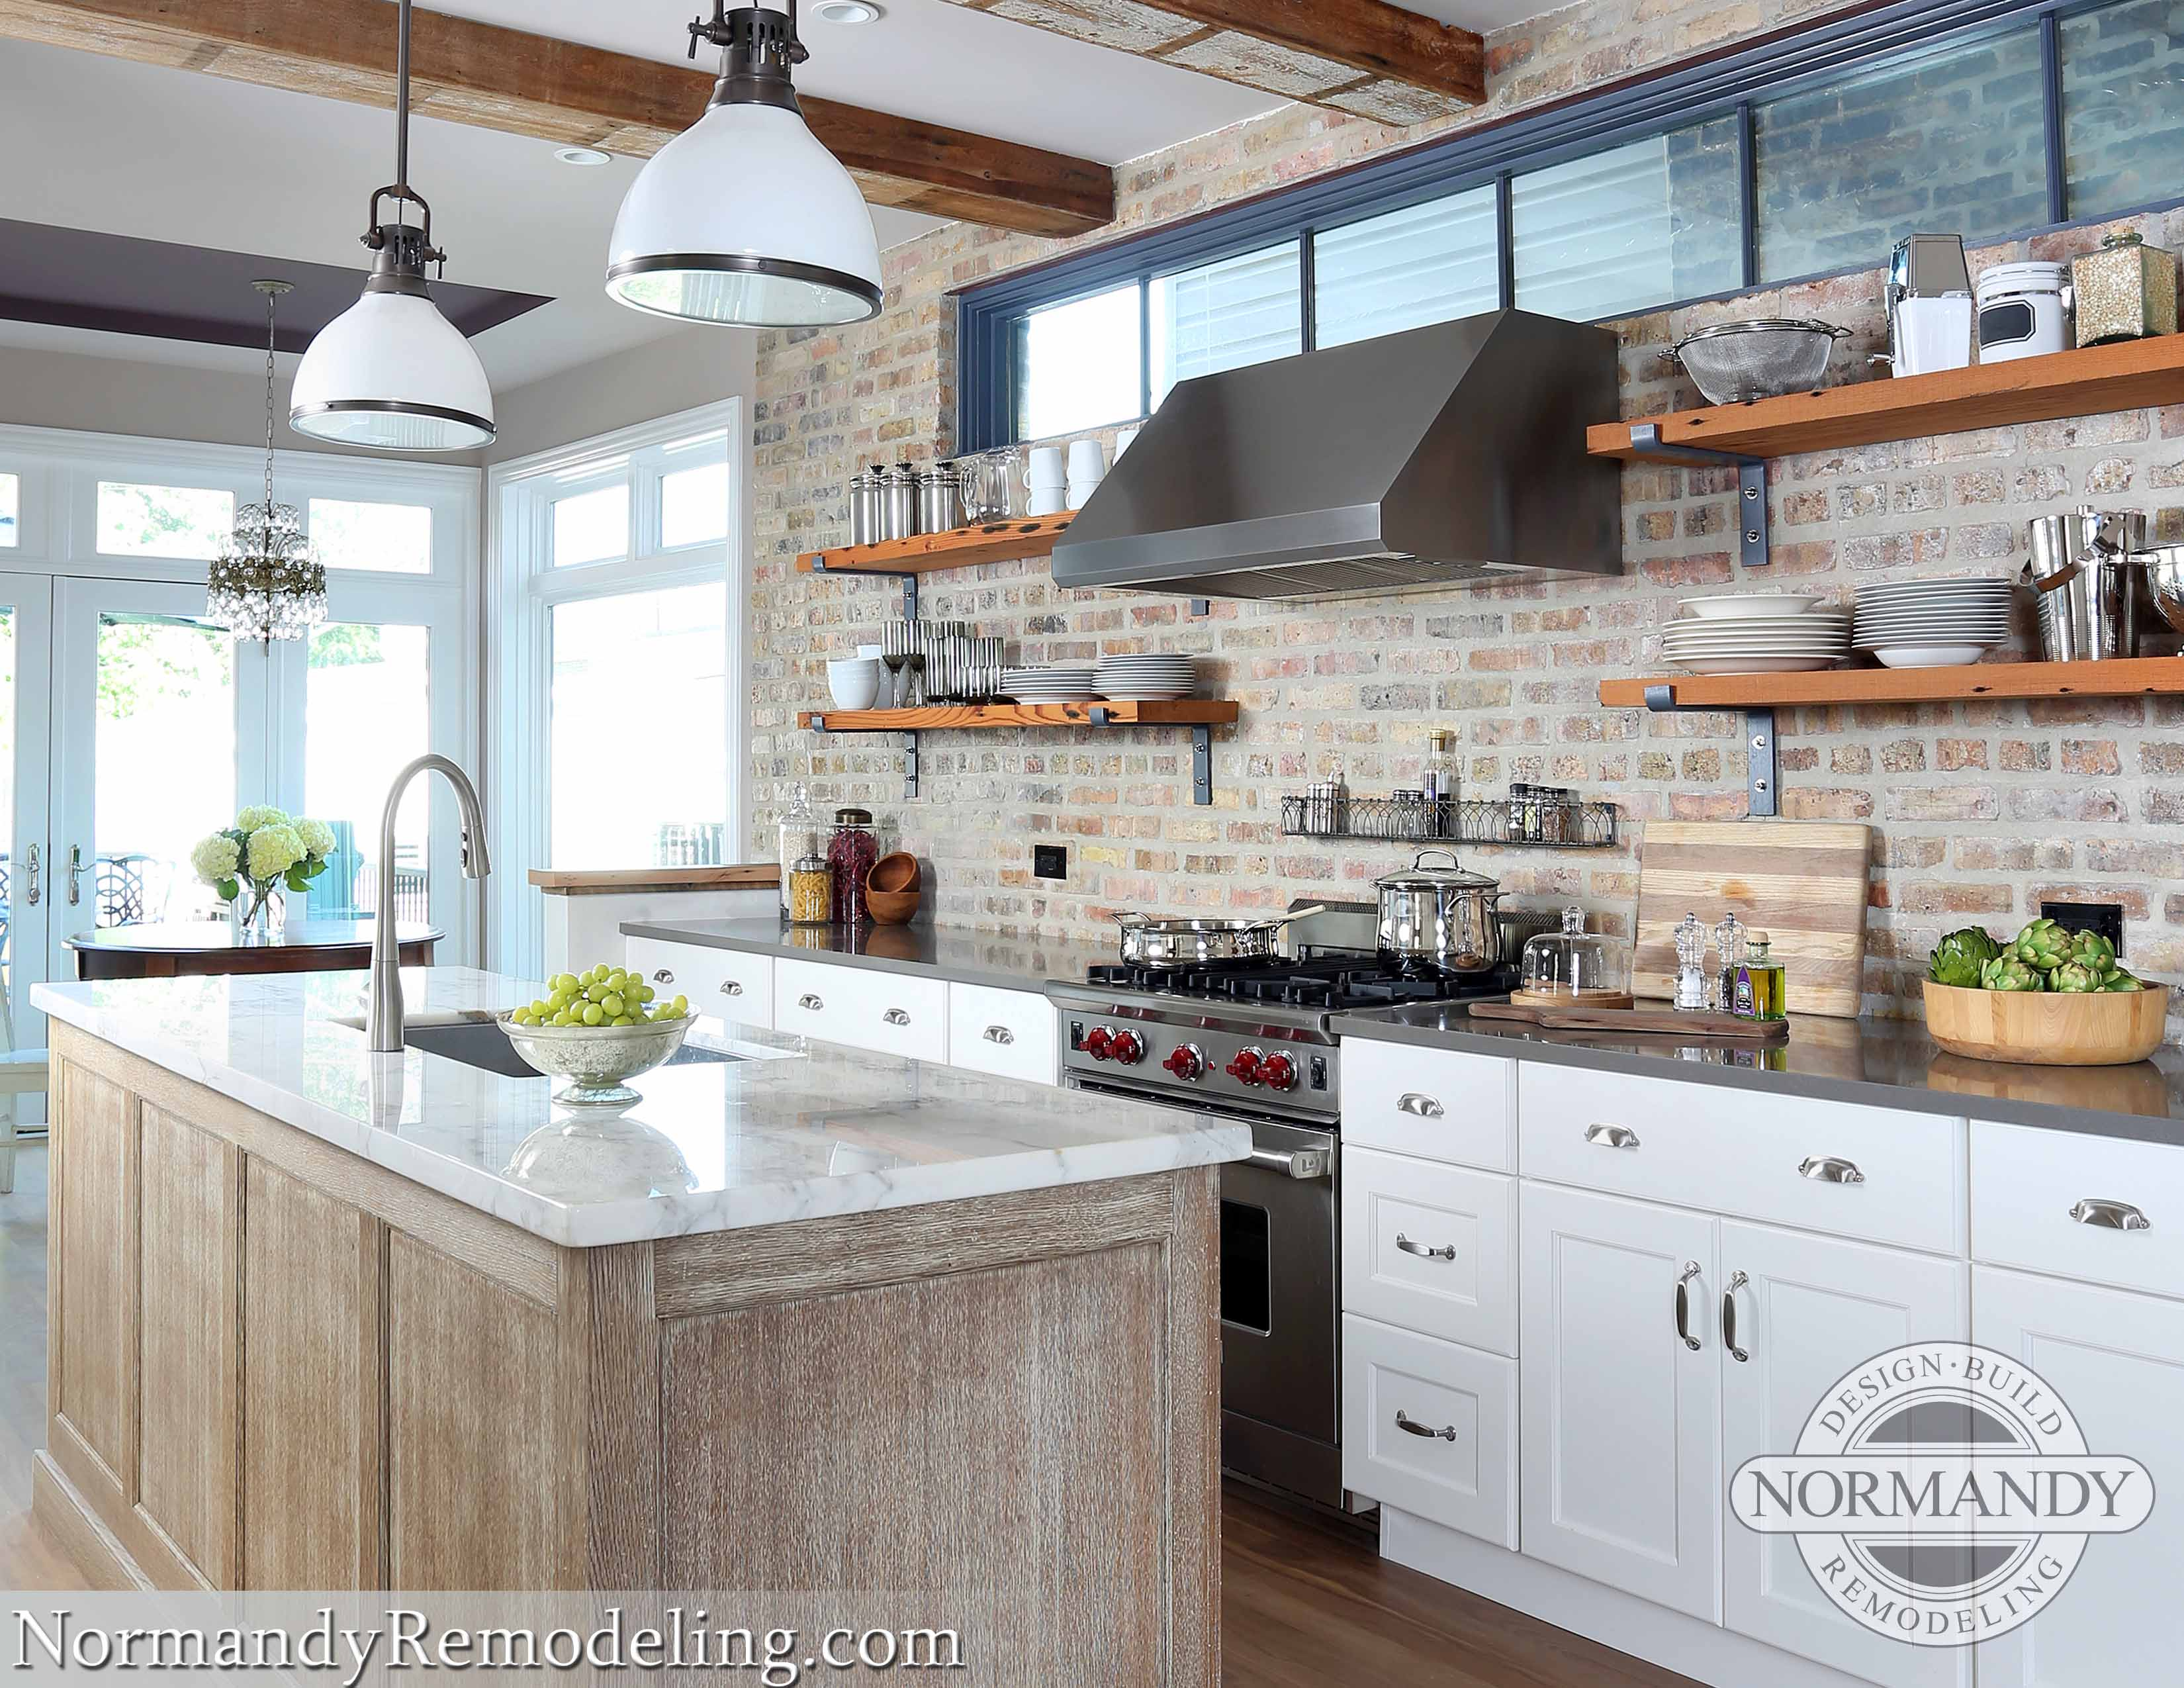 Award Winning Row House Kitchen Renovation In Wicker Park Normandy Remodeling